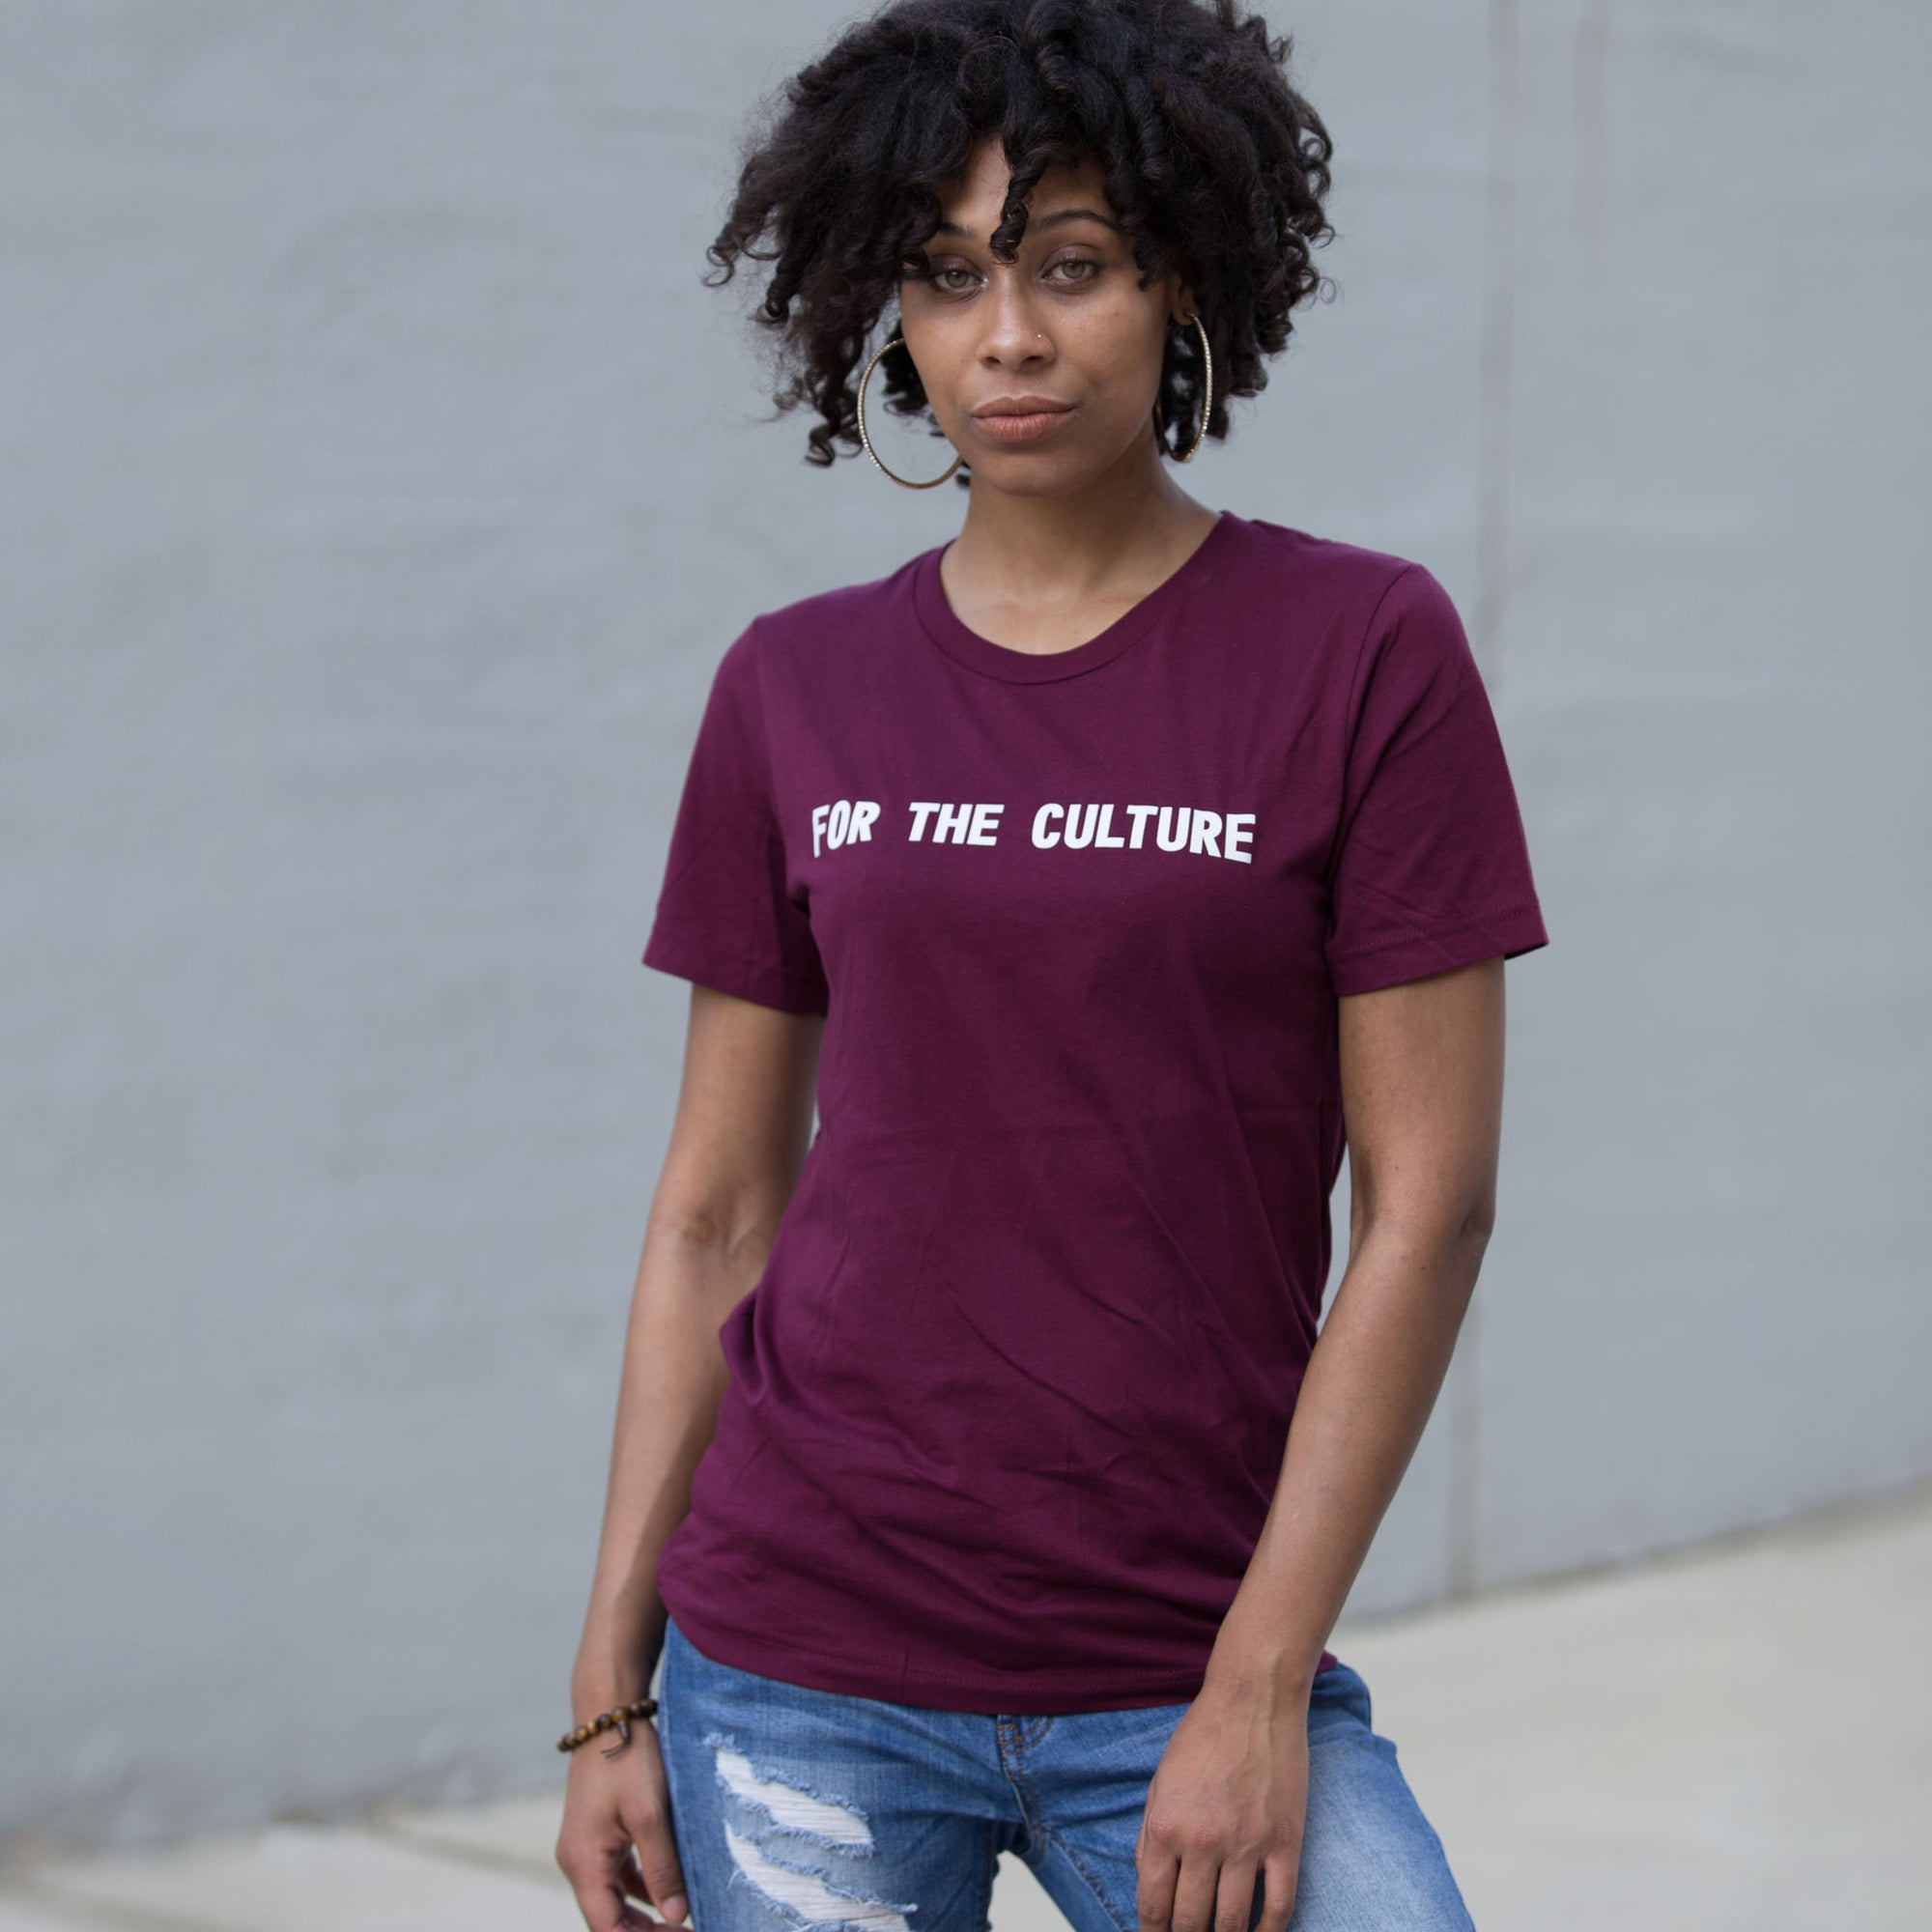 For The Culture Unisex T-Shirt - The Carter Brand - Black By Popular Demand - Rooting For Everybody Black - Black Pride Apparel